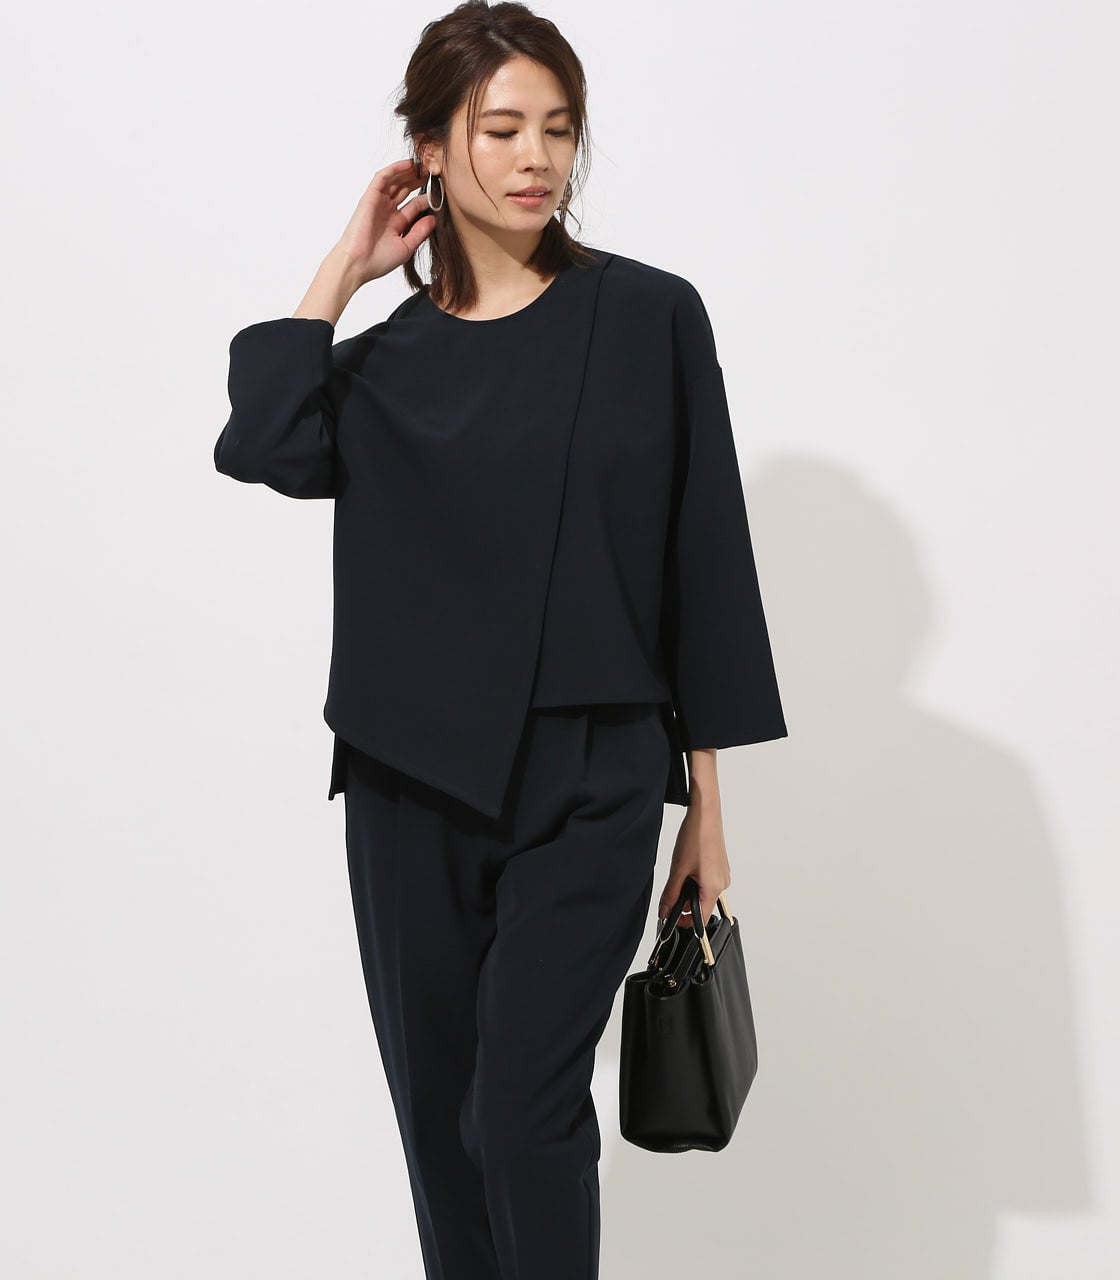 【AZUL BY MOUSSY】LAYERED IRREGULAR HEM TOPS 詳細画像 NVY 1